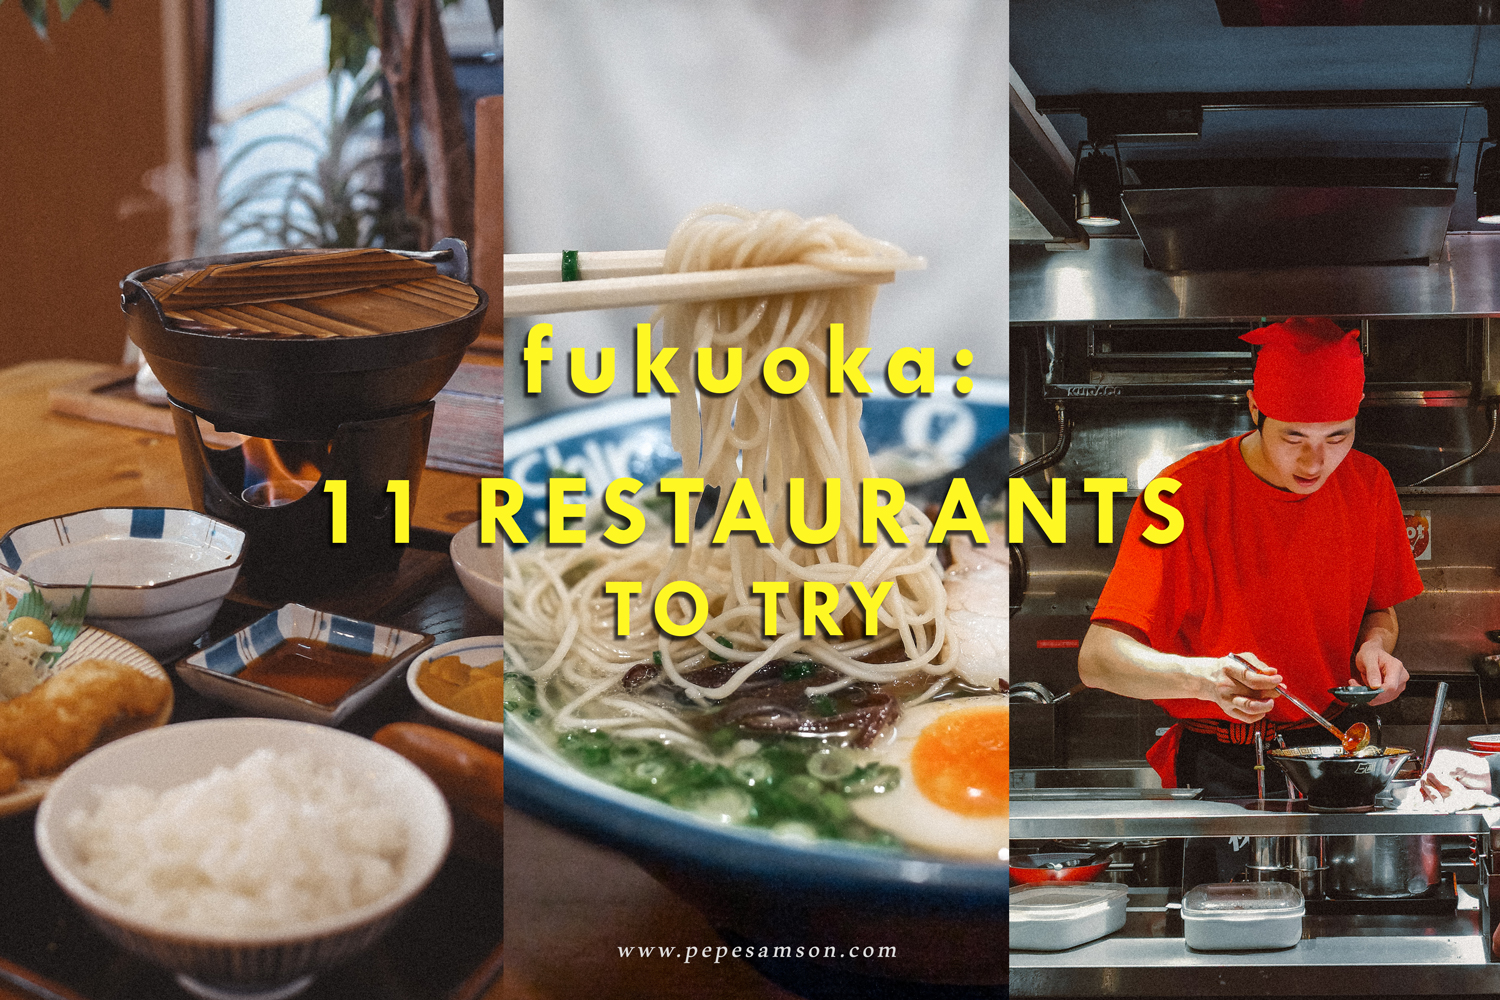 Fukuoka Food Trip: 11 Restaurants to Try